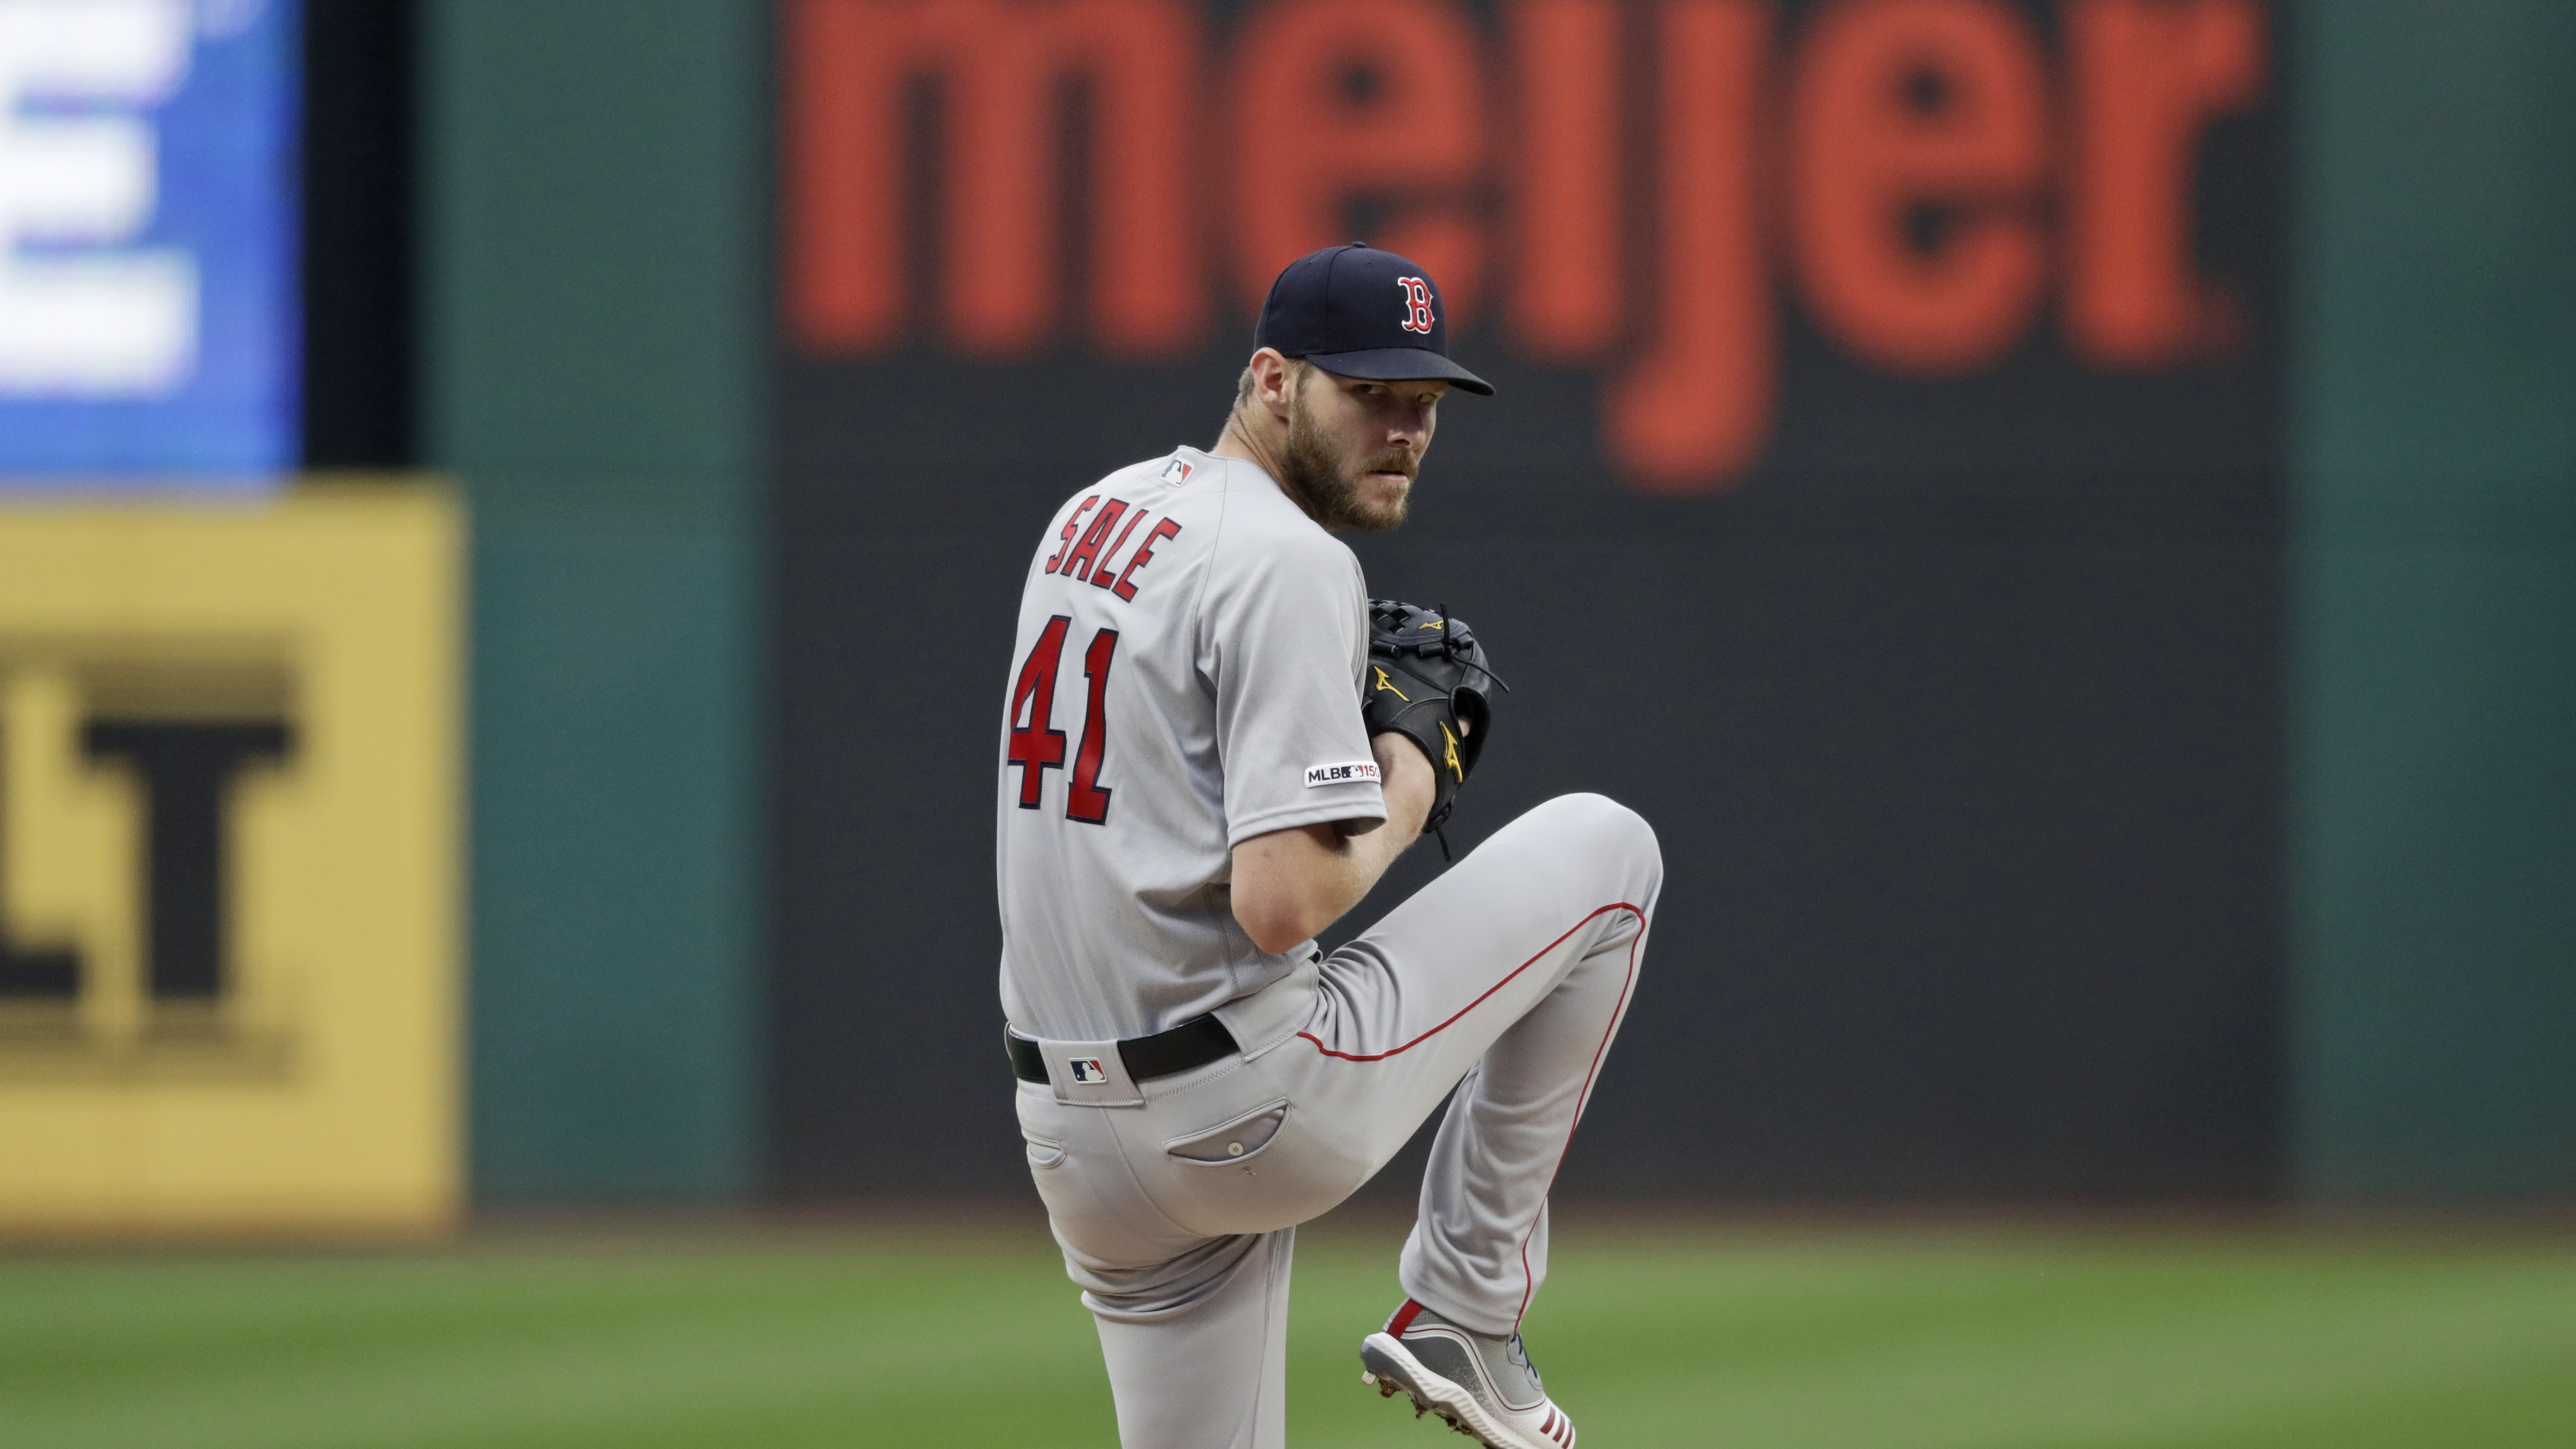 Boston Red Sox 2020 payroll: At least $62.7M freed up with pending free agents but early estimate (with raises) nearing $218M